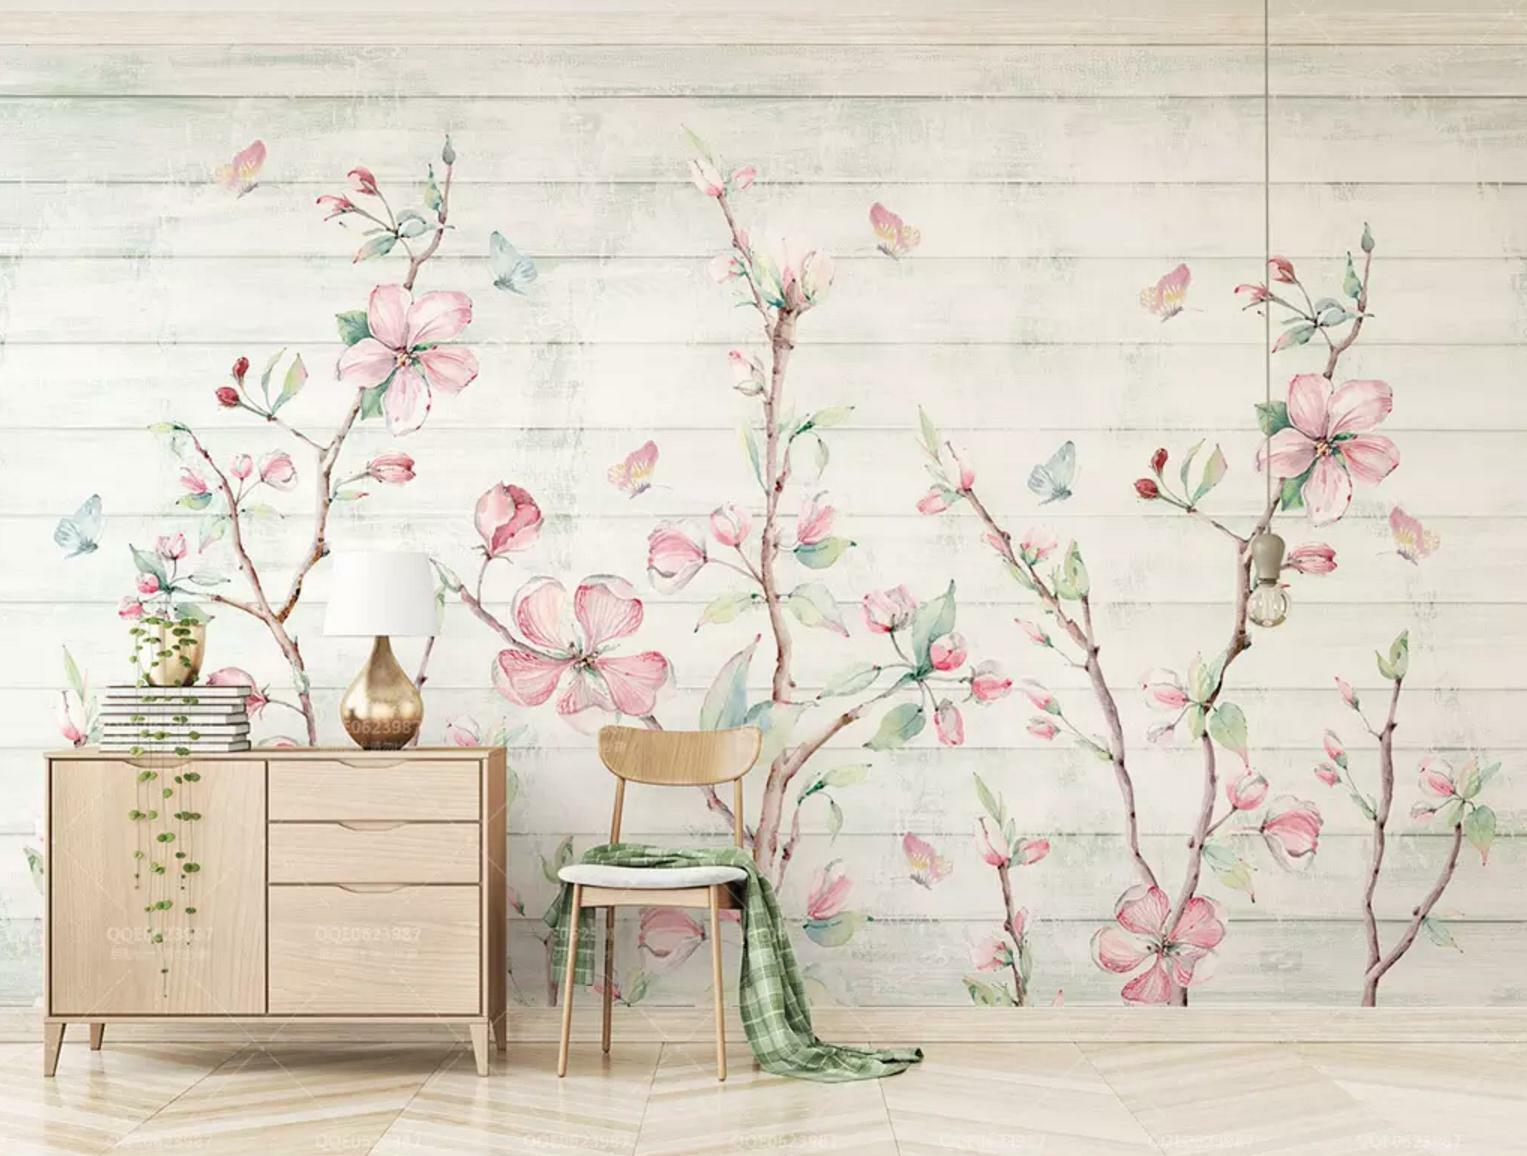 3D Flower Branch 5 Wall Paper Exclusive MXY Wallpaper Mural Decal Indoor wall AJ